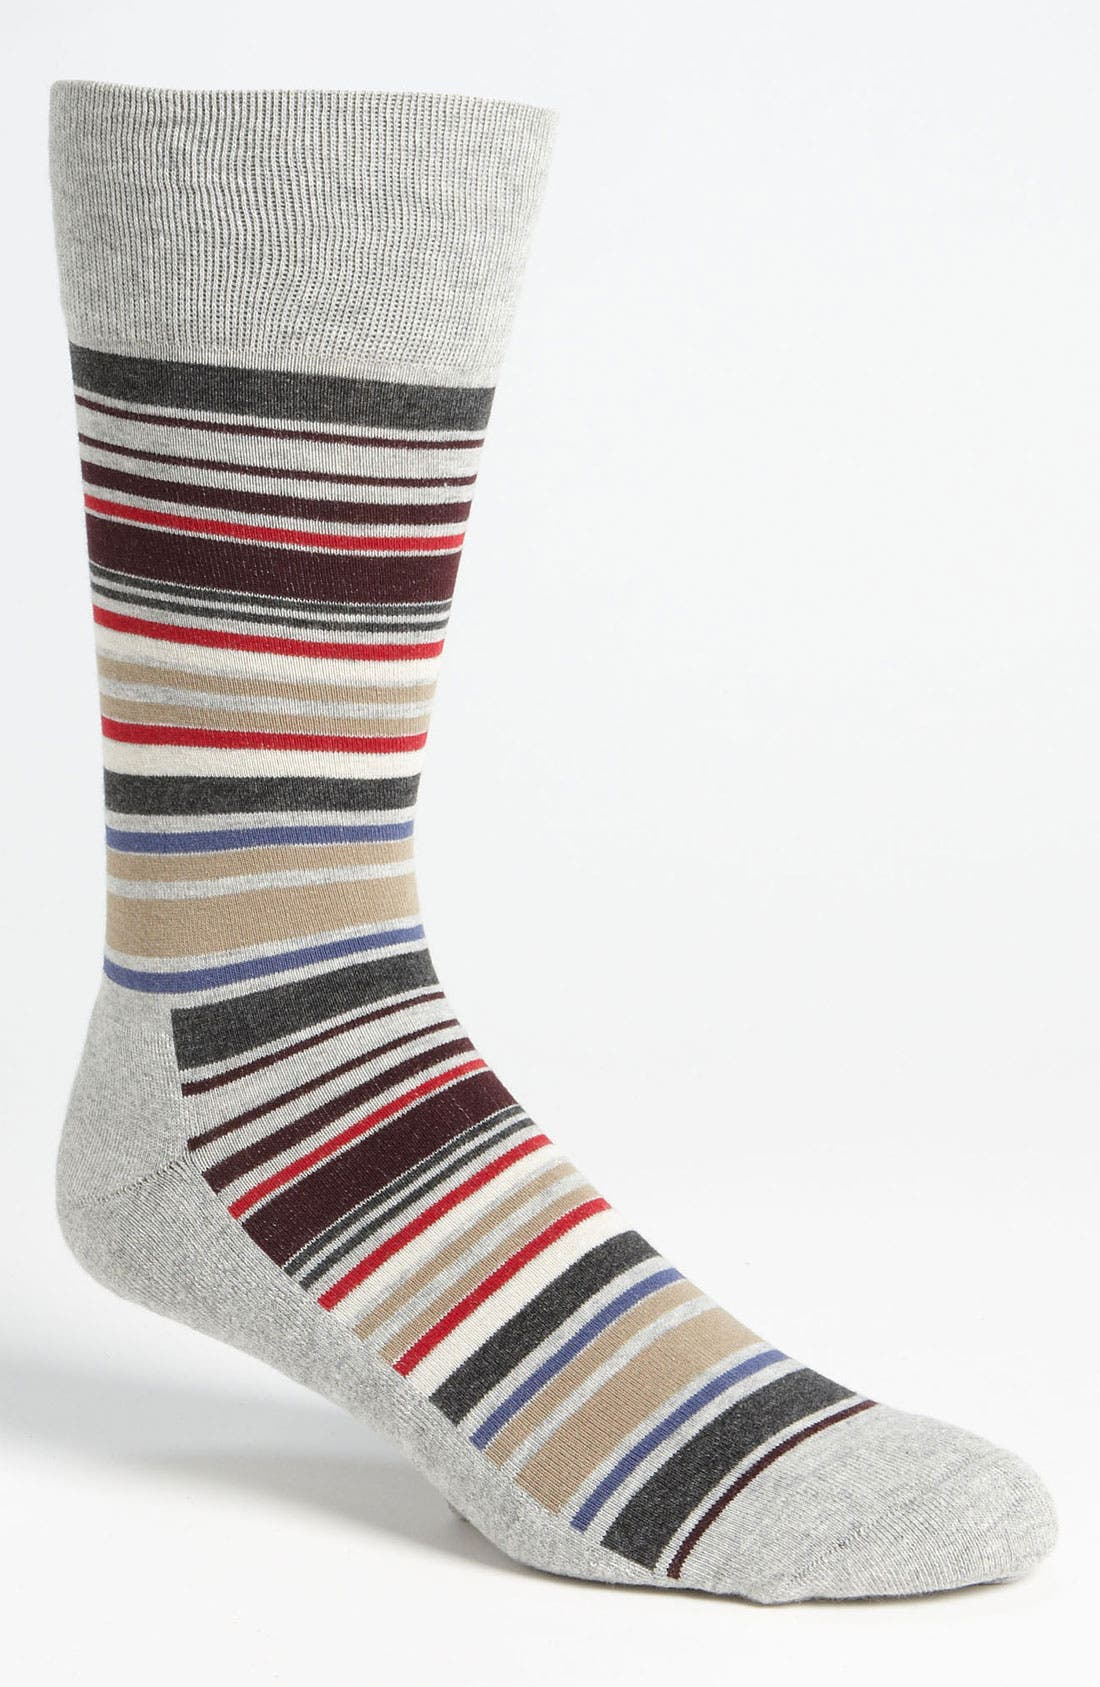 Main Image - Nordstrom Cushioned Multi Stripe Socks